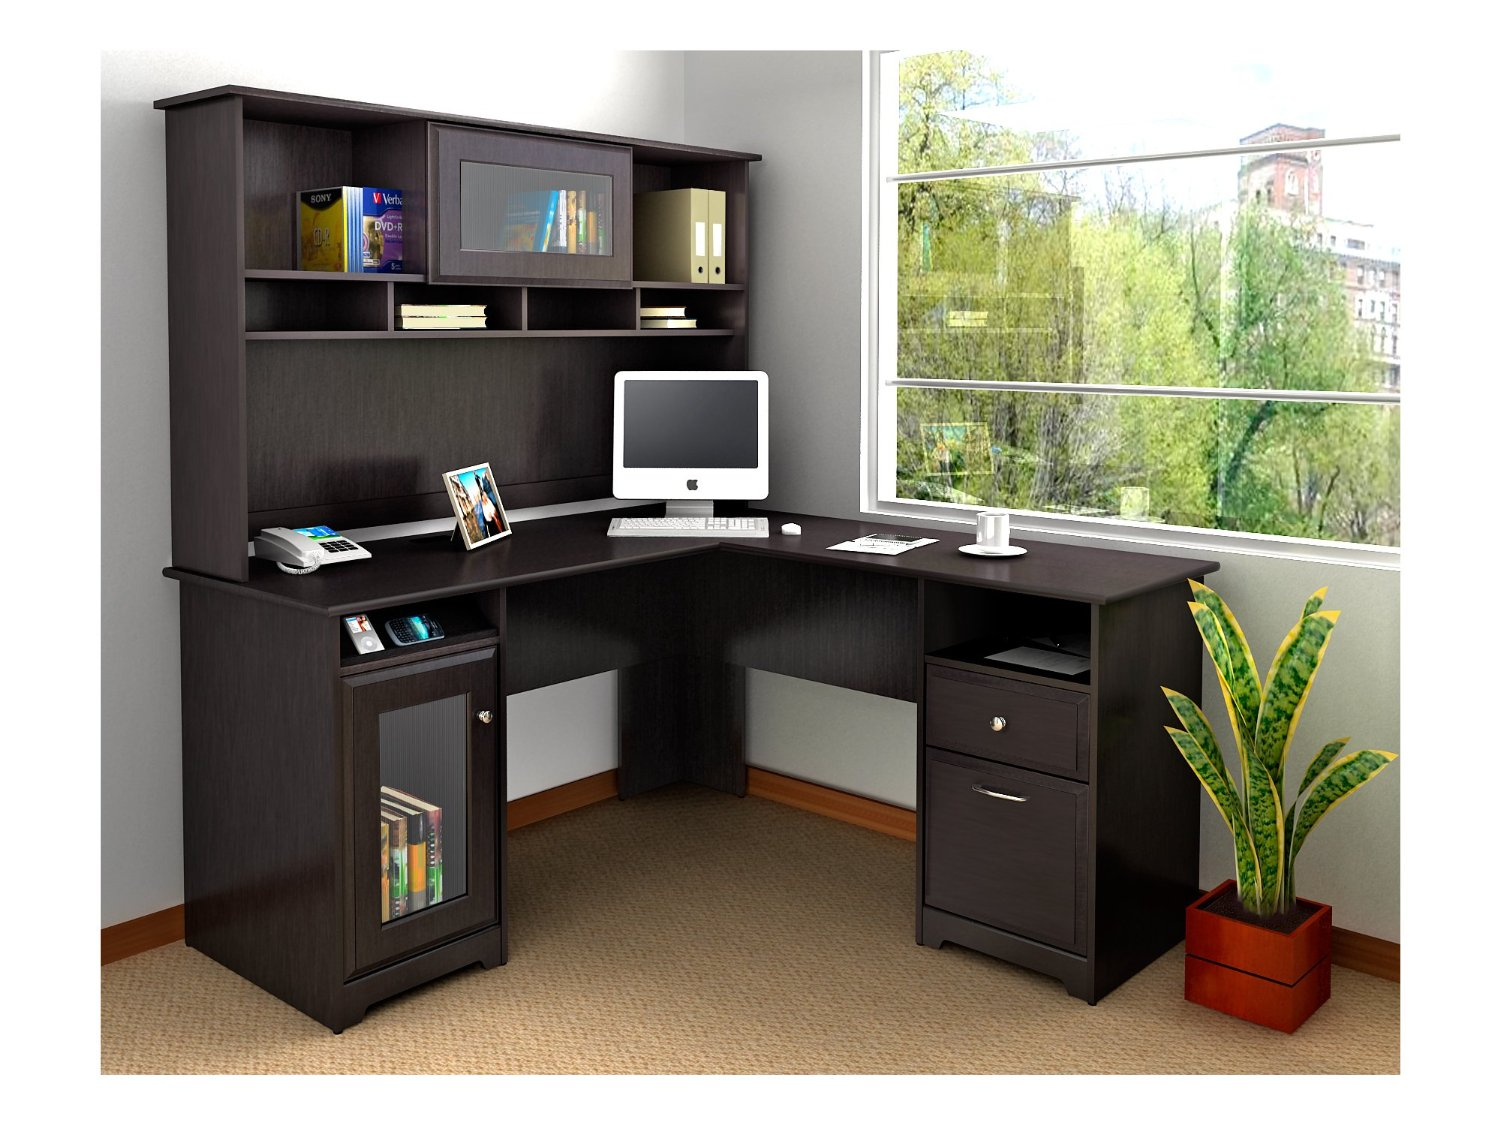 Corner Desk With Shelves Design